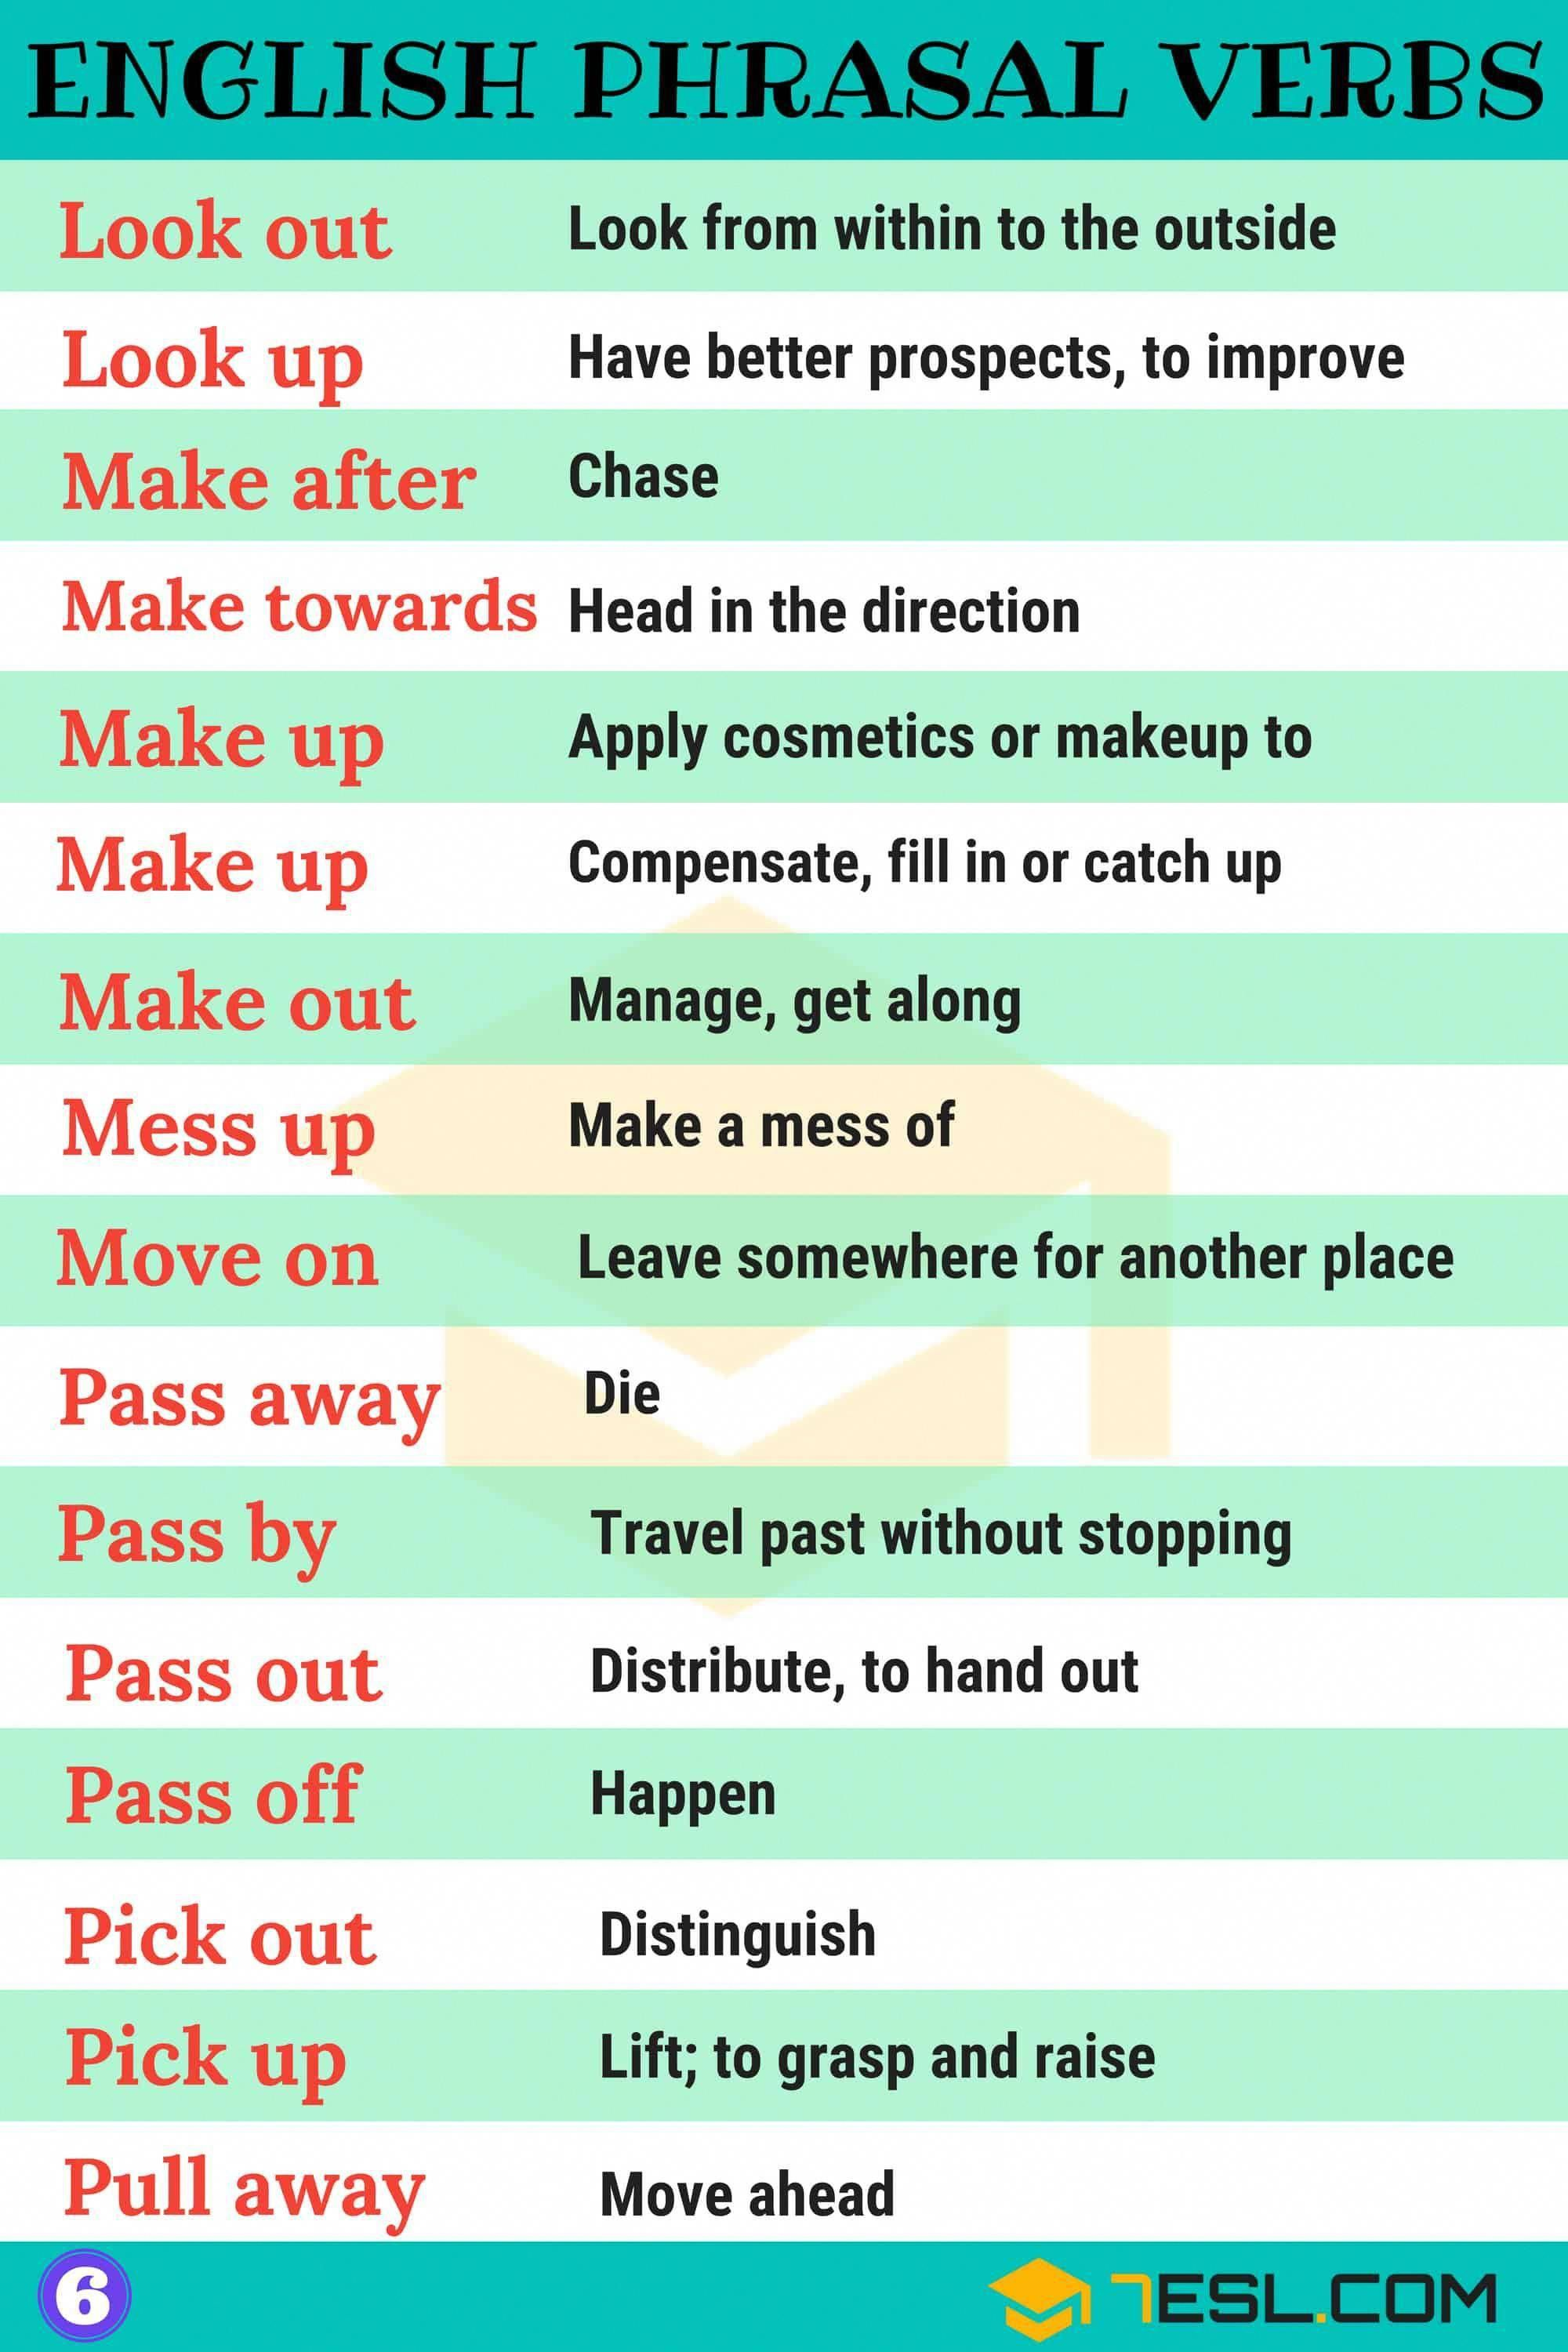 2000 Common Phrasal Verbs In English And Their Meanings 16 Apprendreanglais Apprendreanglaisenfa Apprendre L Anglais Liste Verbes Comment Apprendre L Anglais